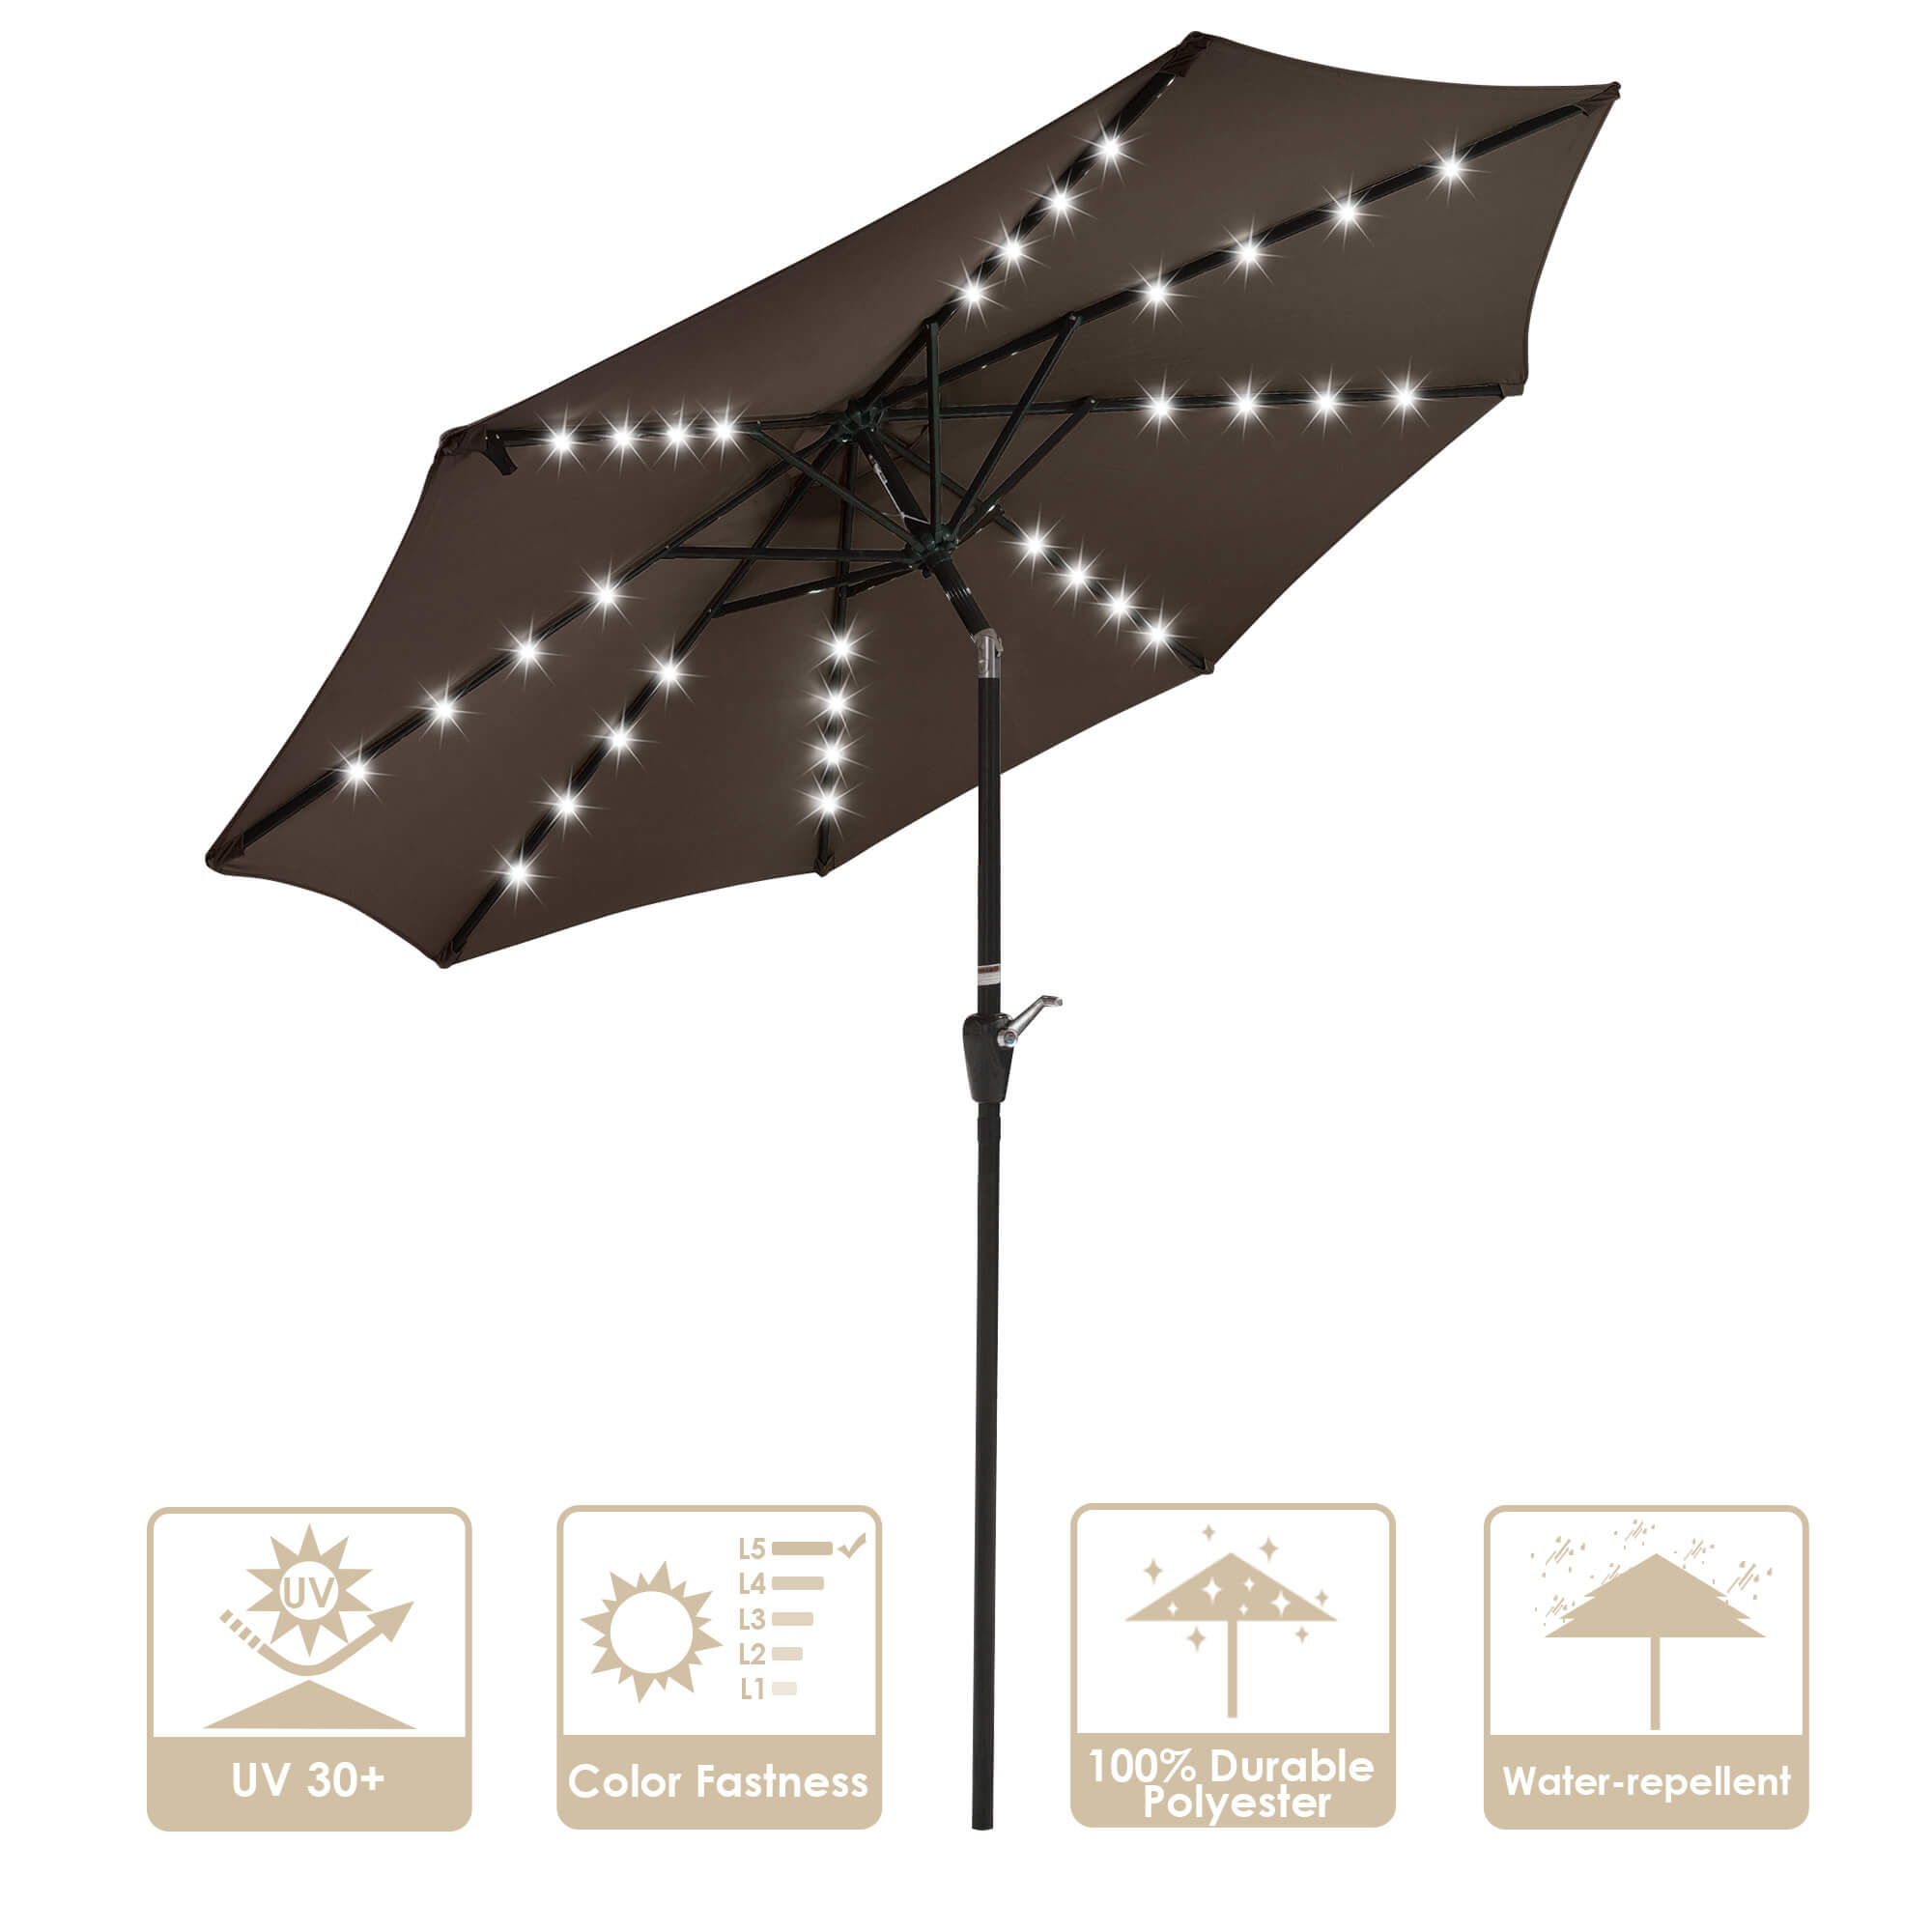 SOLAR PATIO UMBRELLA WITH UV RESISTANT AND ANTI FADING MATERIAL